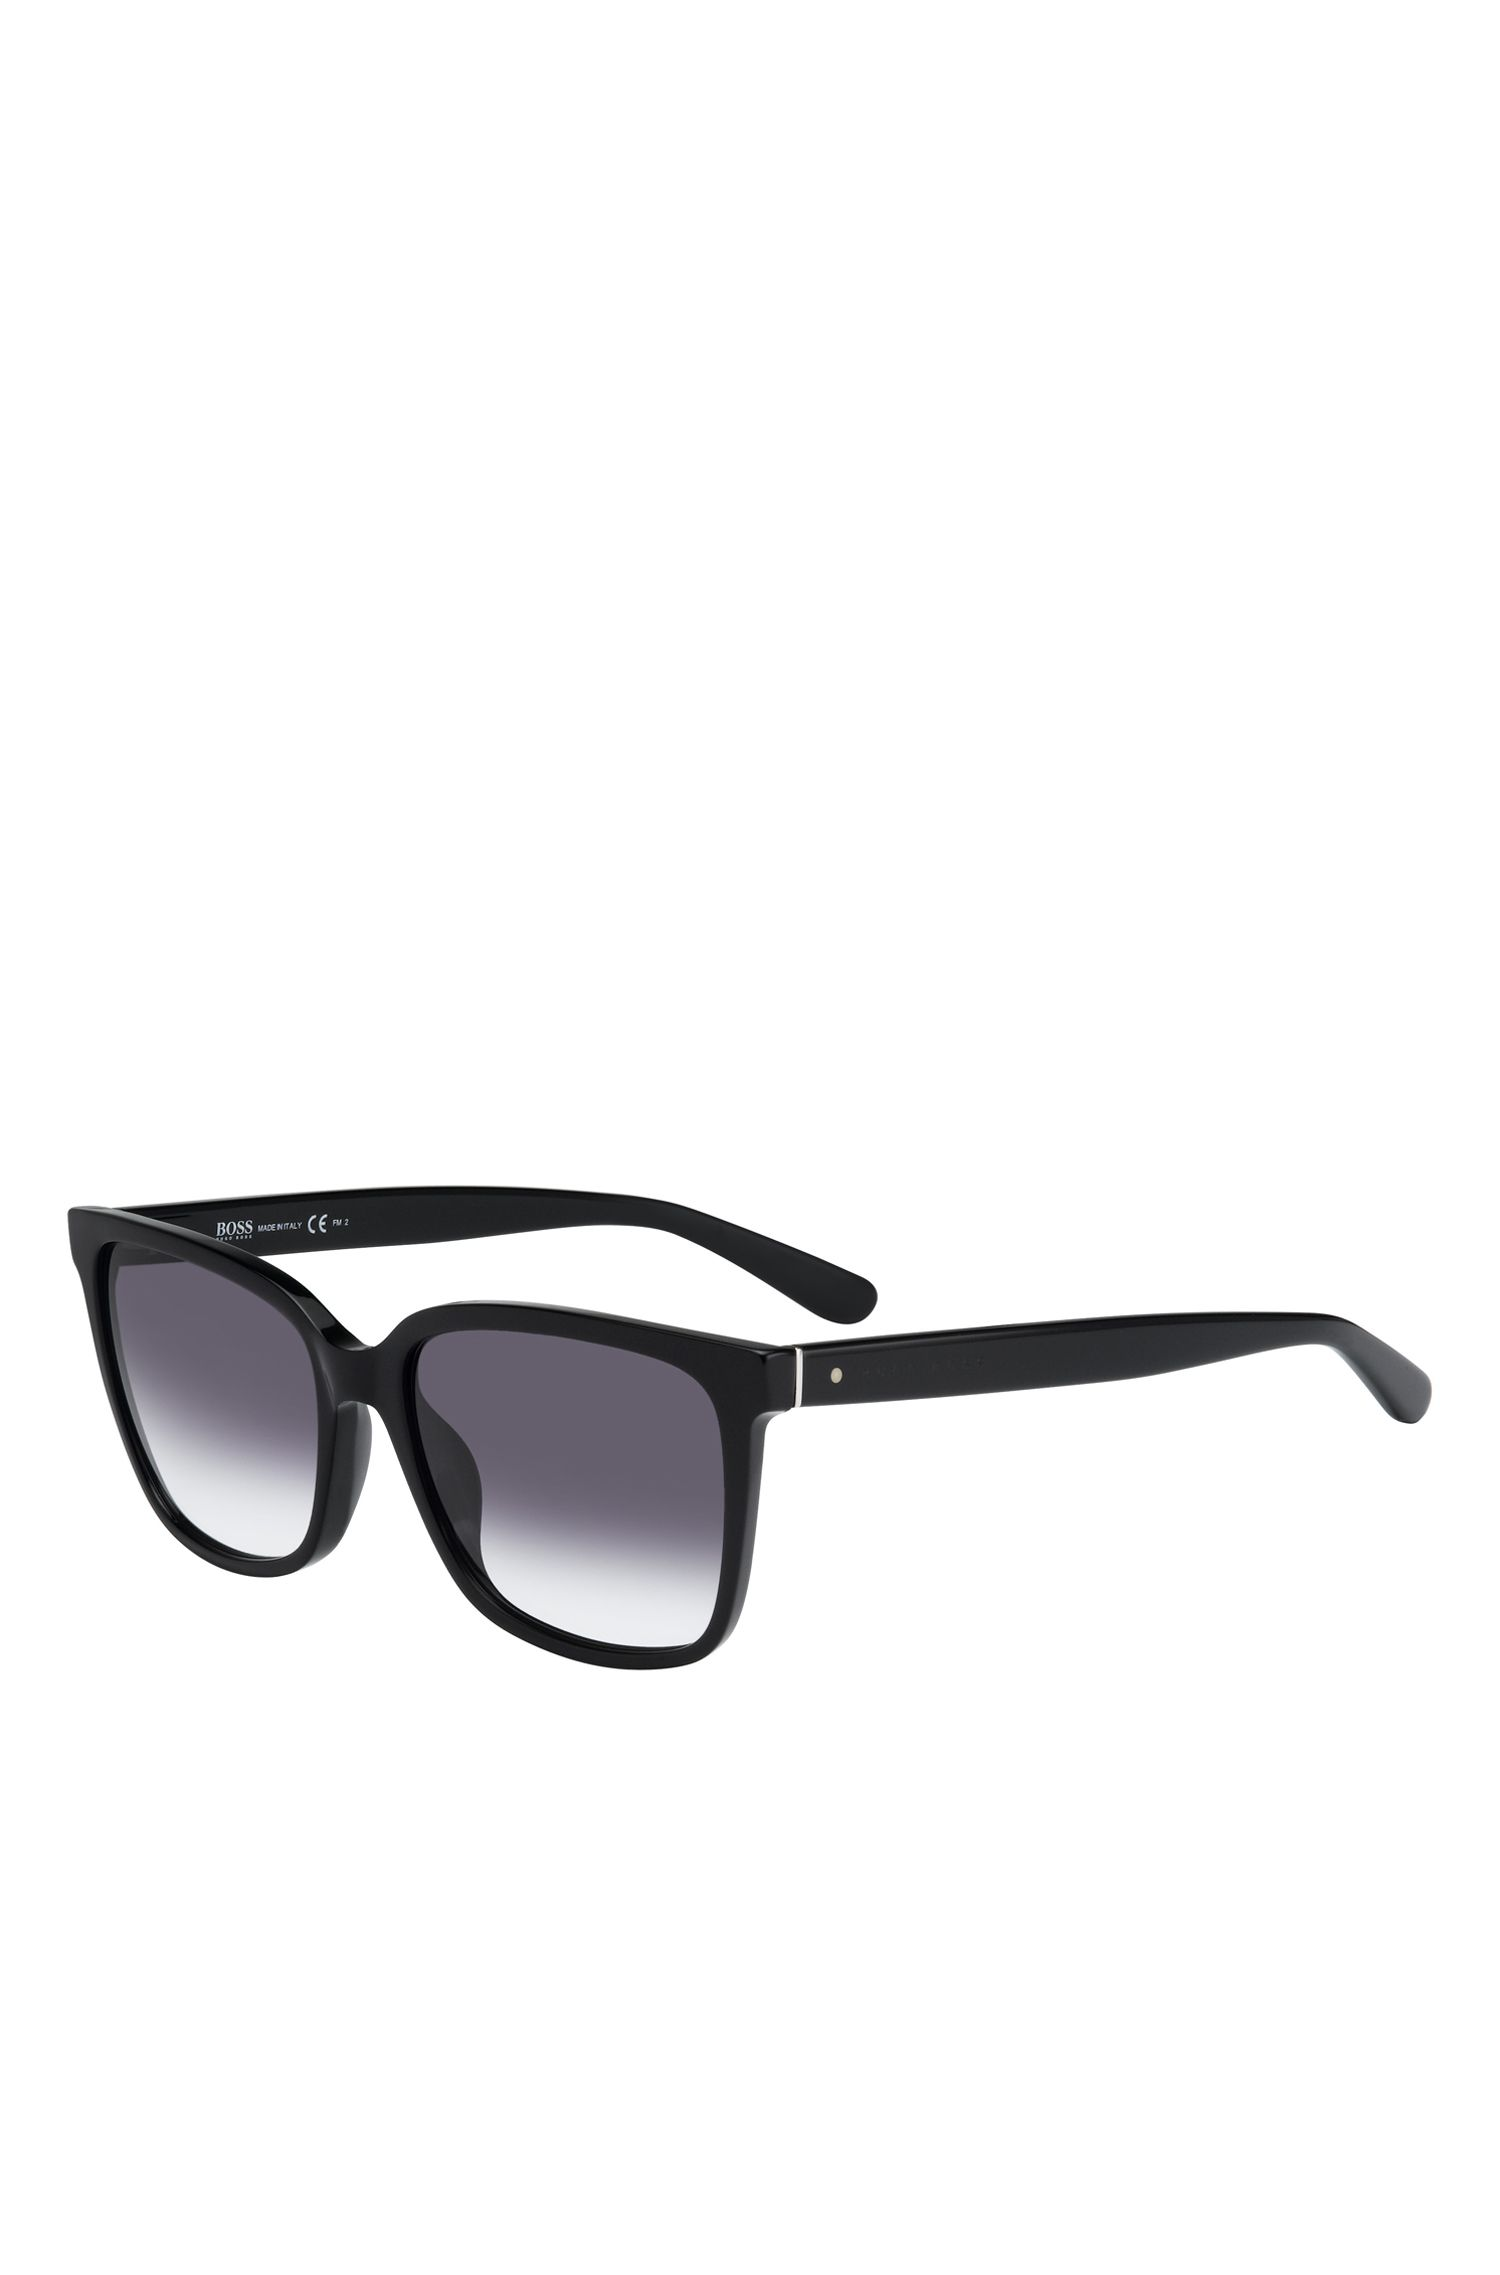 'BOSS 0787S' | Gradient Lens Rectangular Sunglasses, Assorted-Pre-Pack